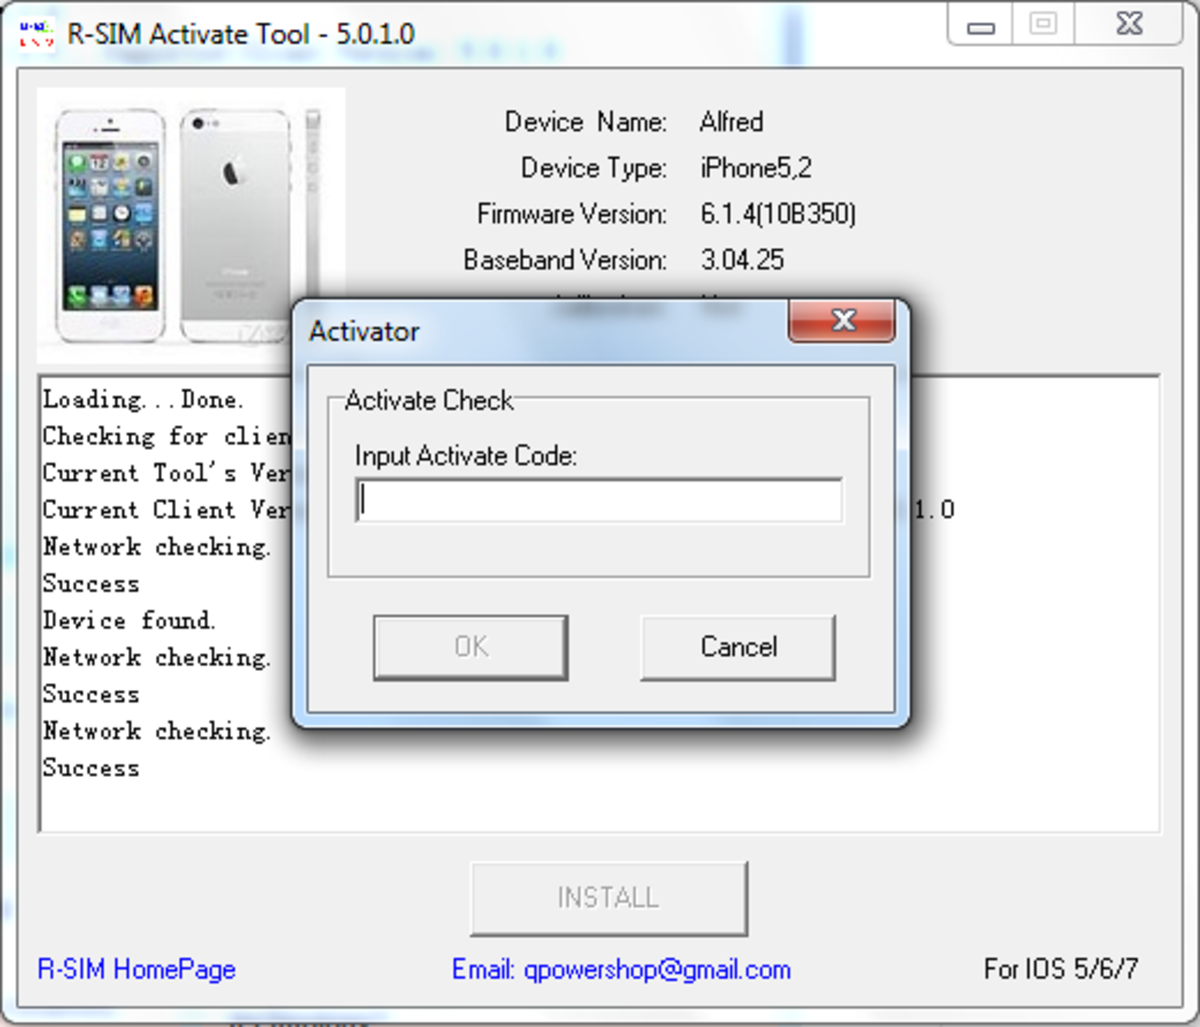 r-sim patch activation tool download